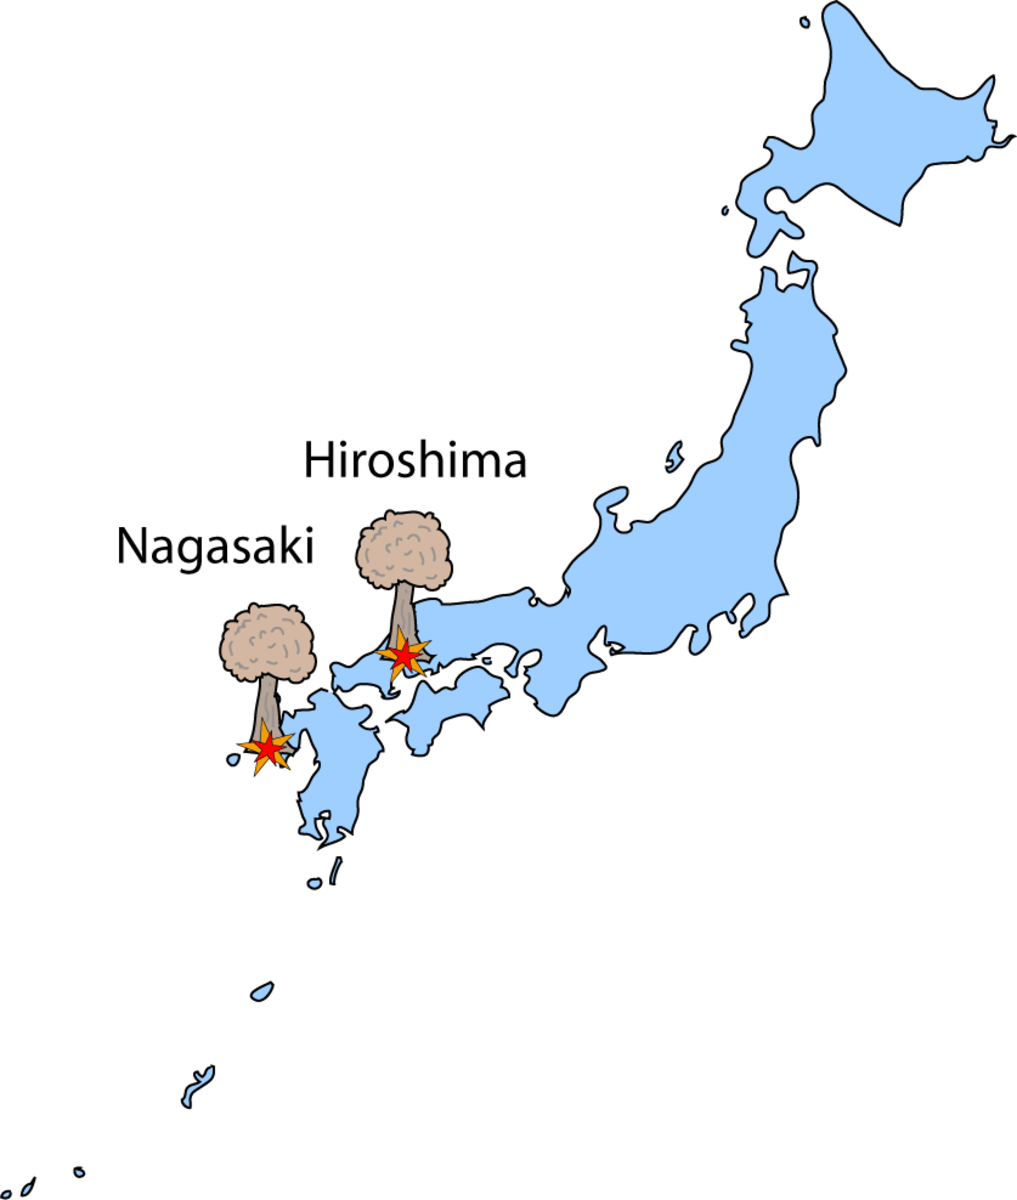 Map showing the locations of Hiroshima and Nagasaki, Japan where the two atomic weapons were employed